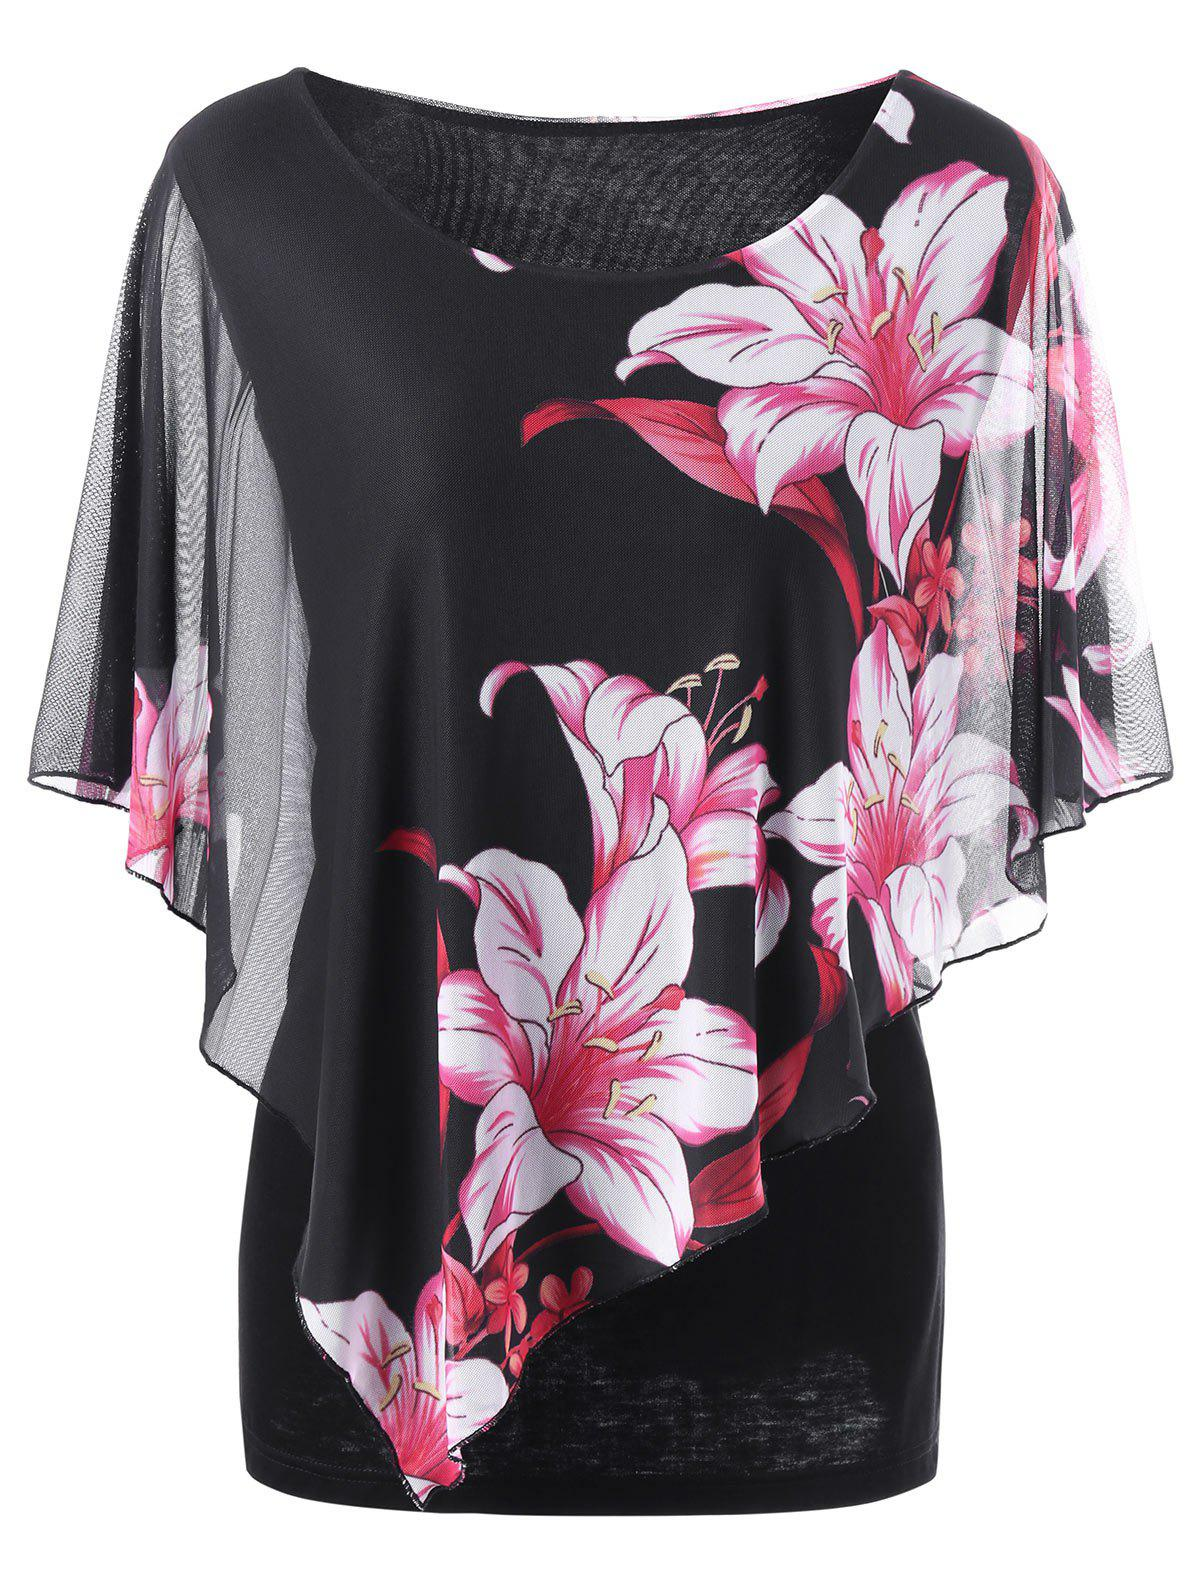 Store Overlay Floral Casual Plus Size T-Shirt